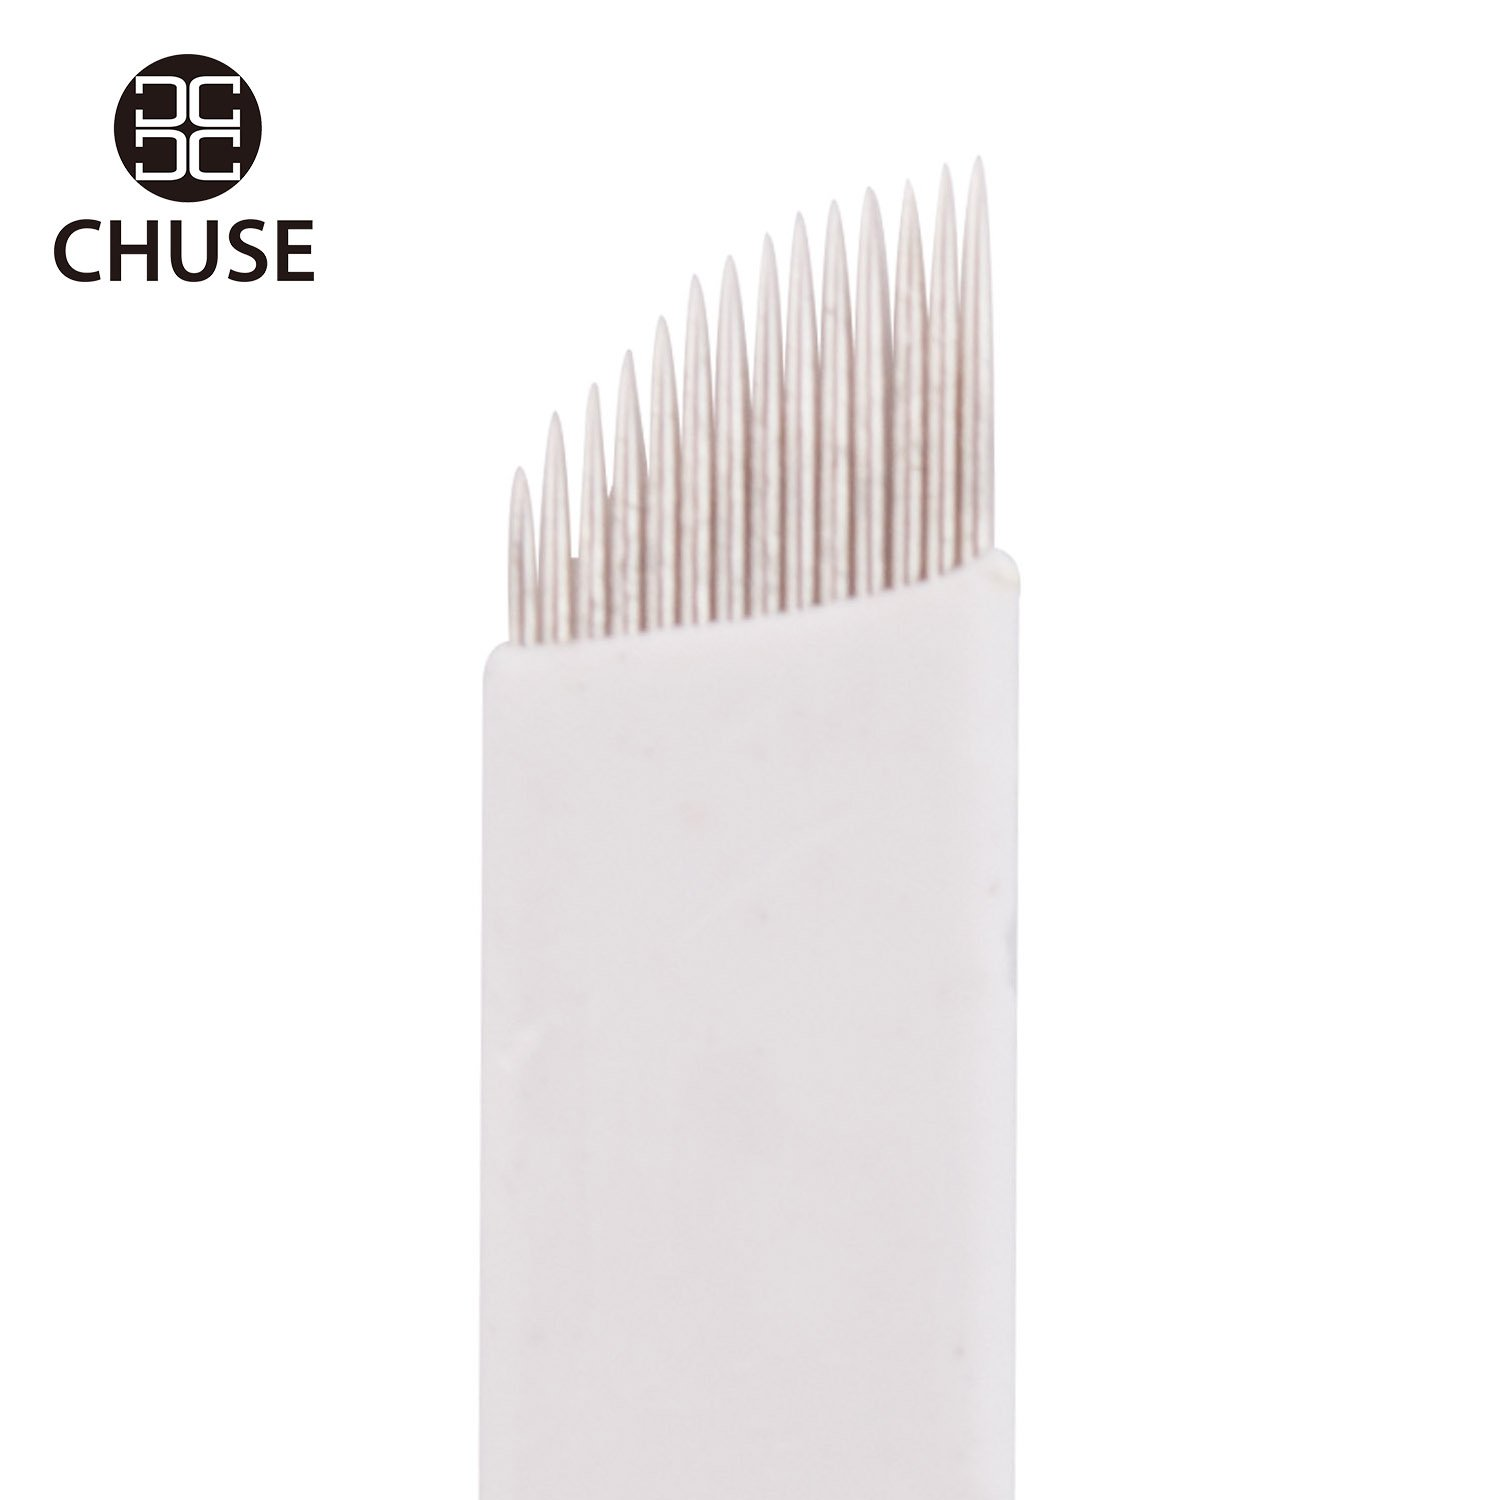 Chuse Maquillage Micro Needling Sourcils permanent Aiguilles Tattoo Manuel Micro lame S14 50pcs / boîte 14 microblading pente